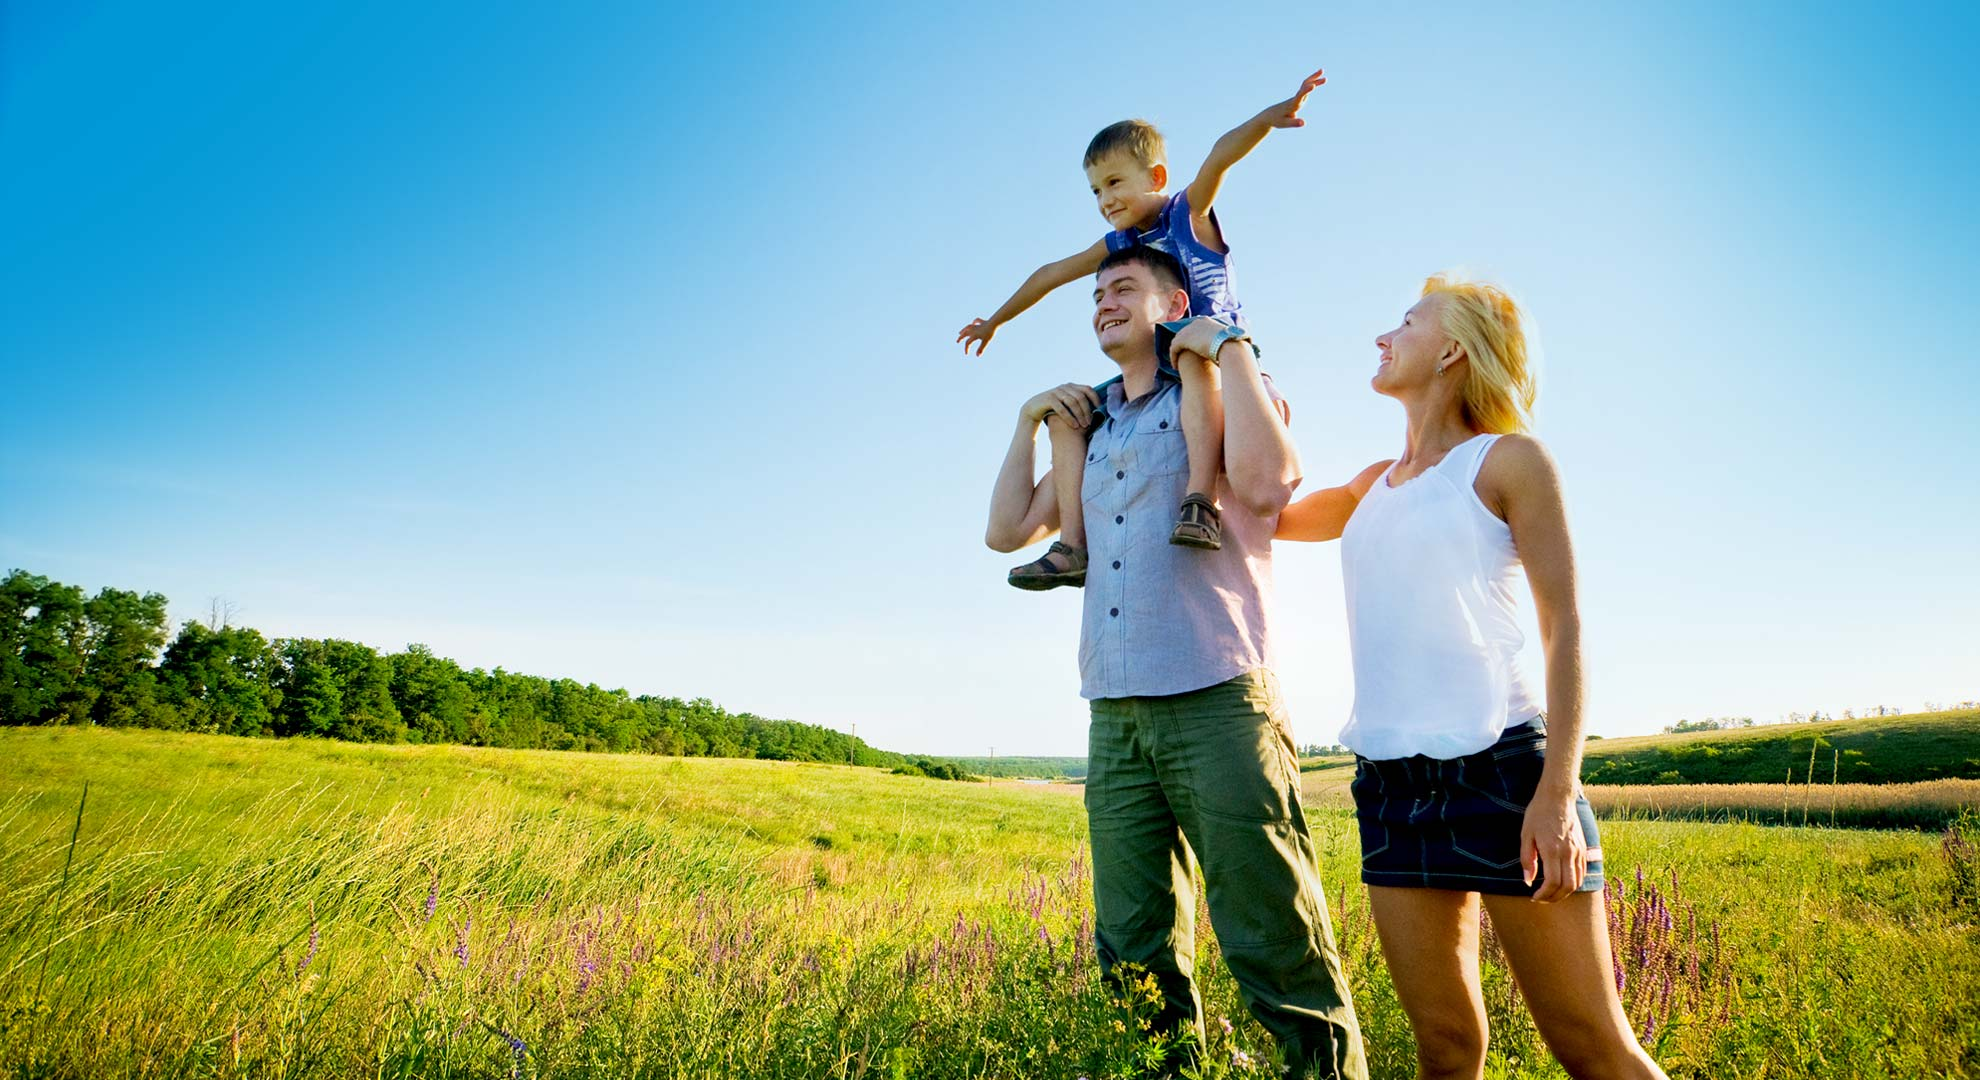 Finding Low Cost Insurance Policies Without Compromising On Quality